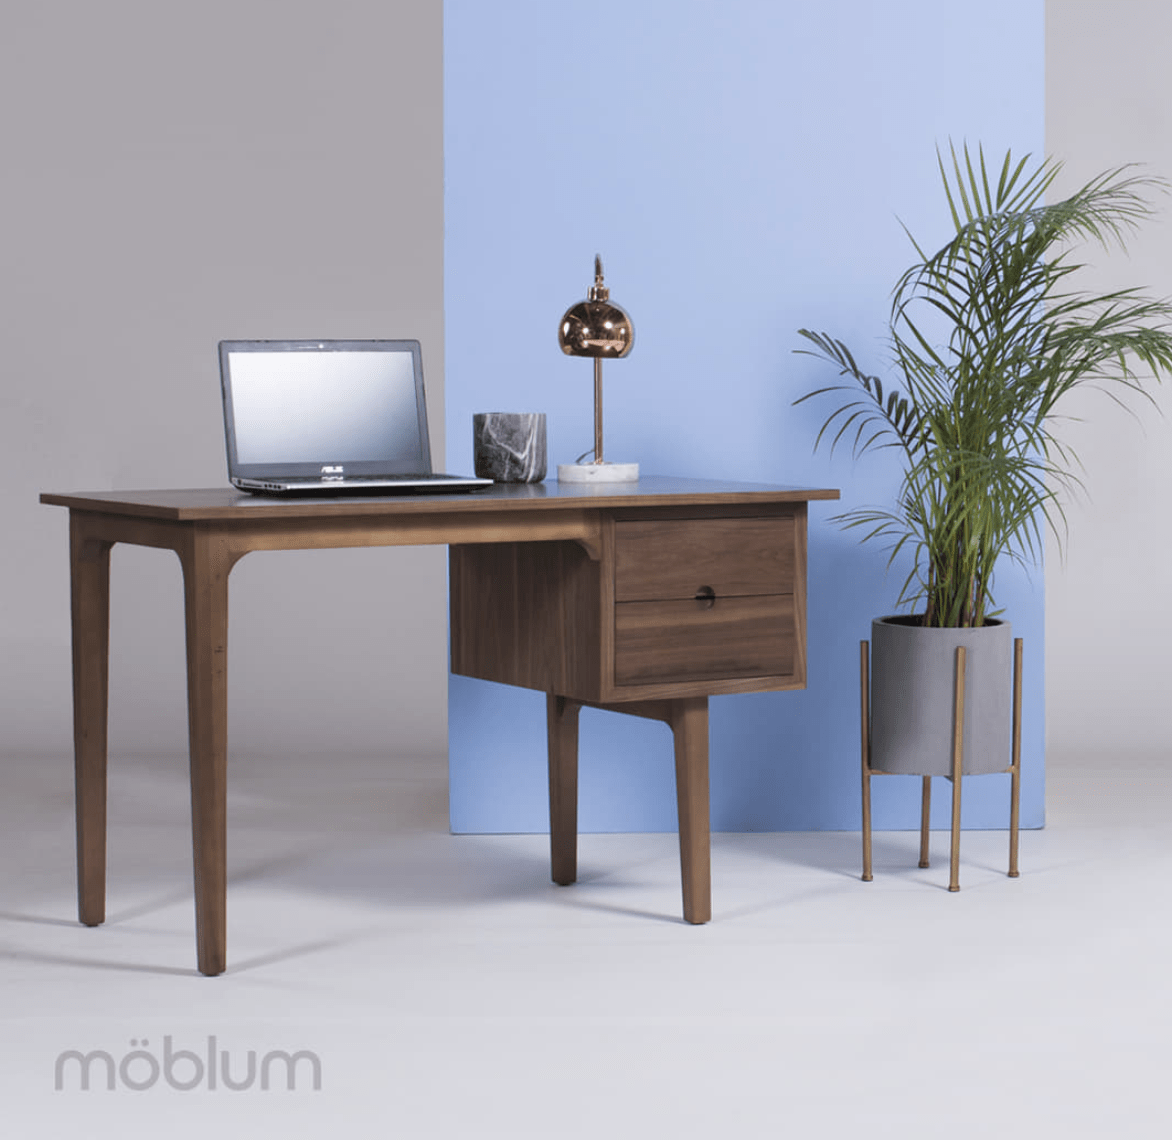 moblum_Tendencias-2019-en-decoracion-de-interiores(5)